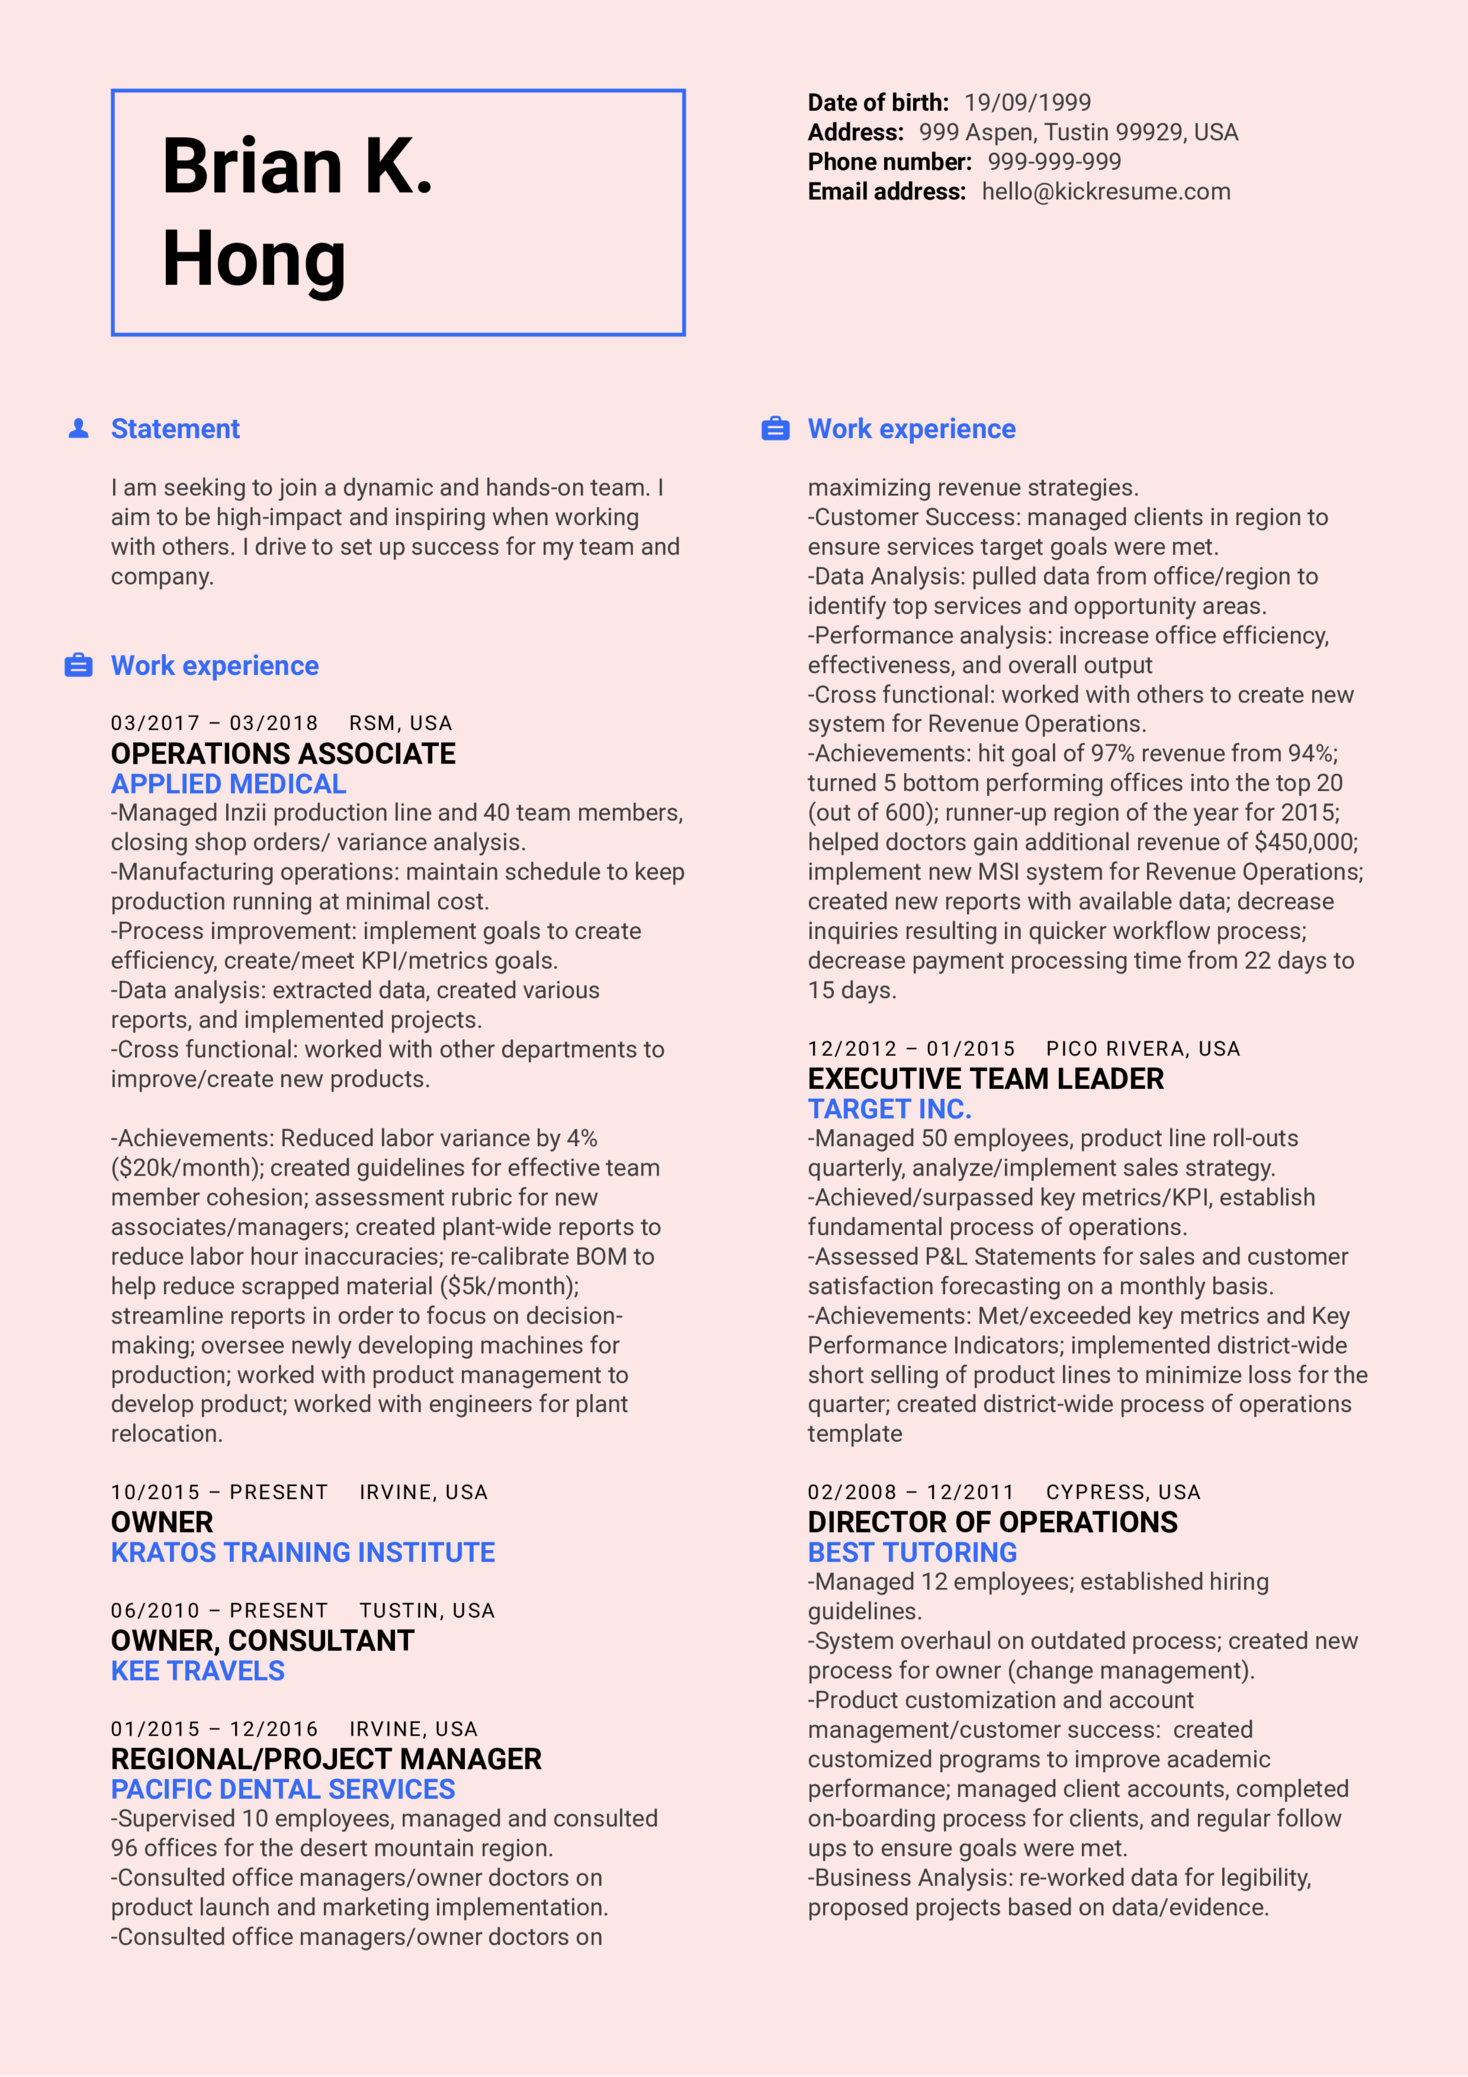 Healthcare Business Manager Resume Sample (parte 1)